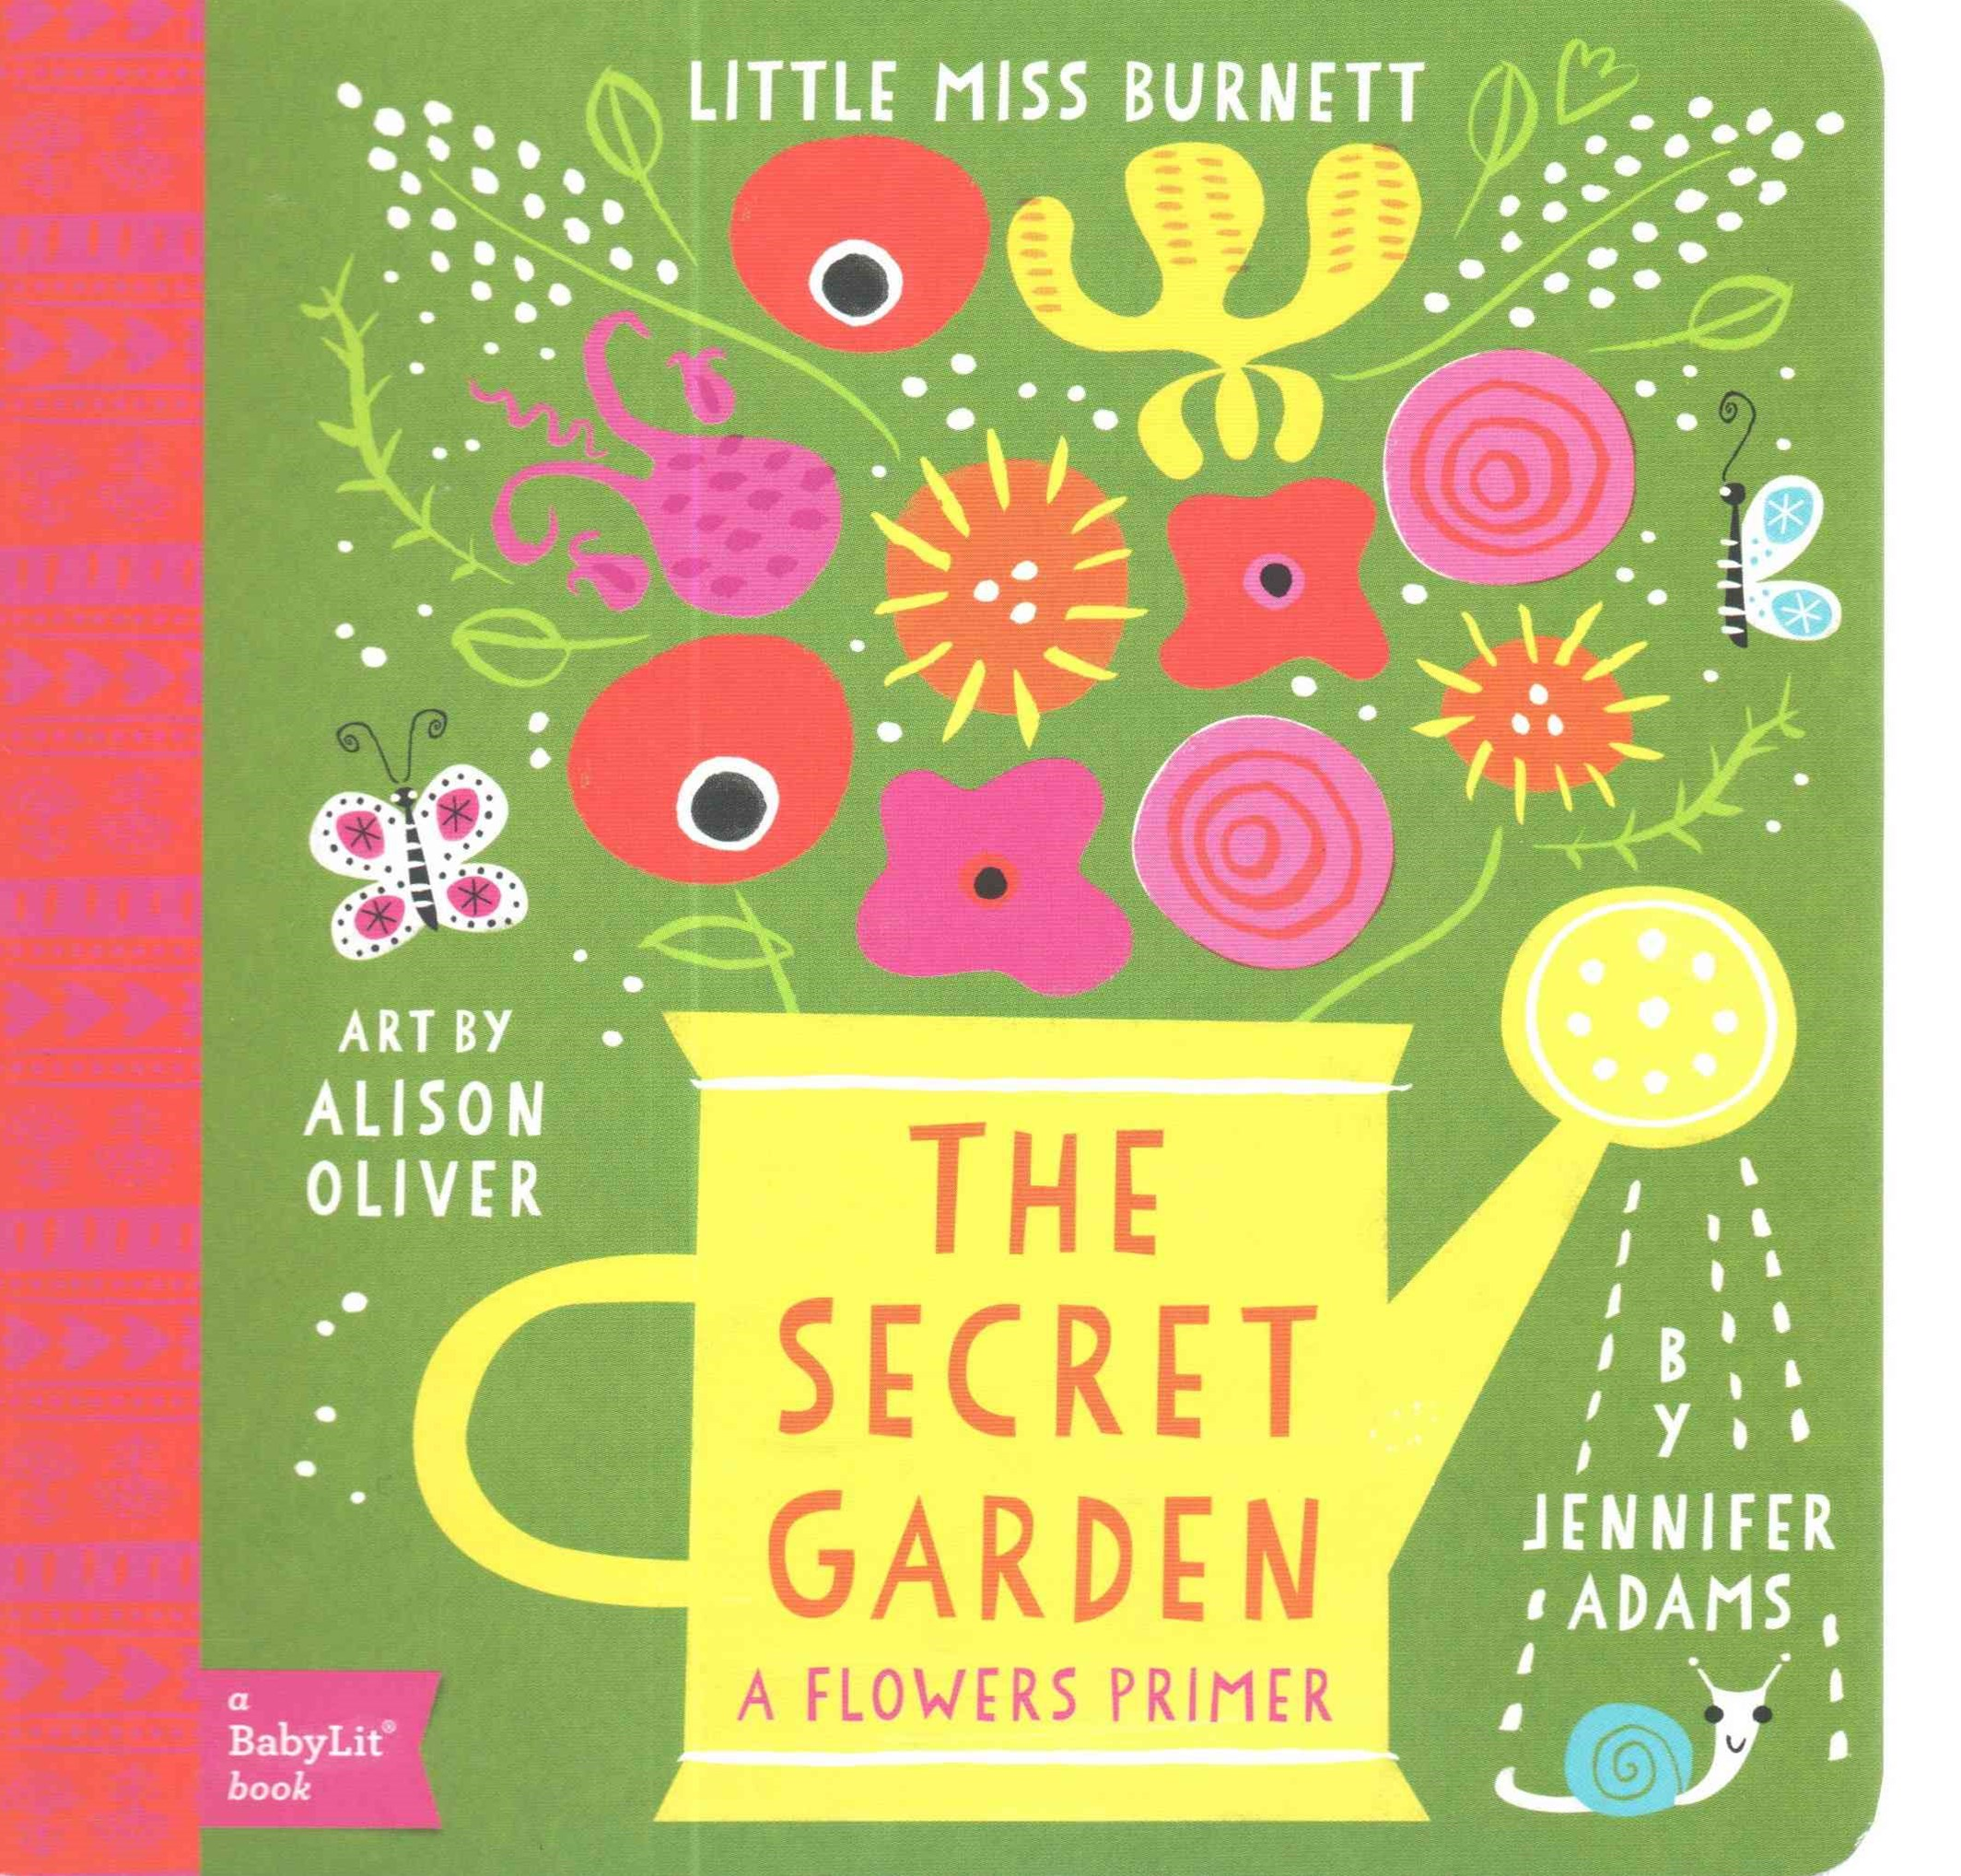 Little Miss Burnett The Secret Garden: A BabyLit Flowers Primer